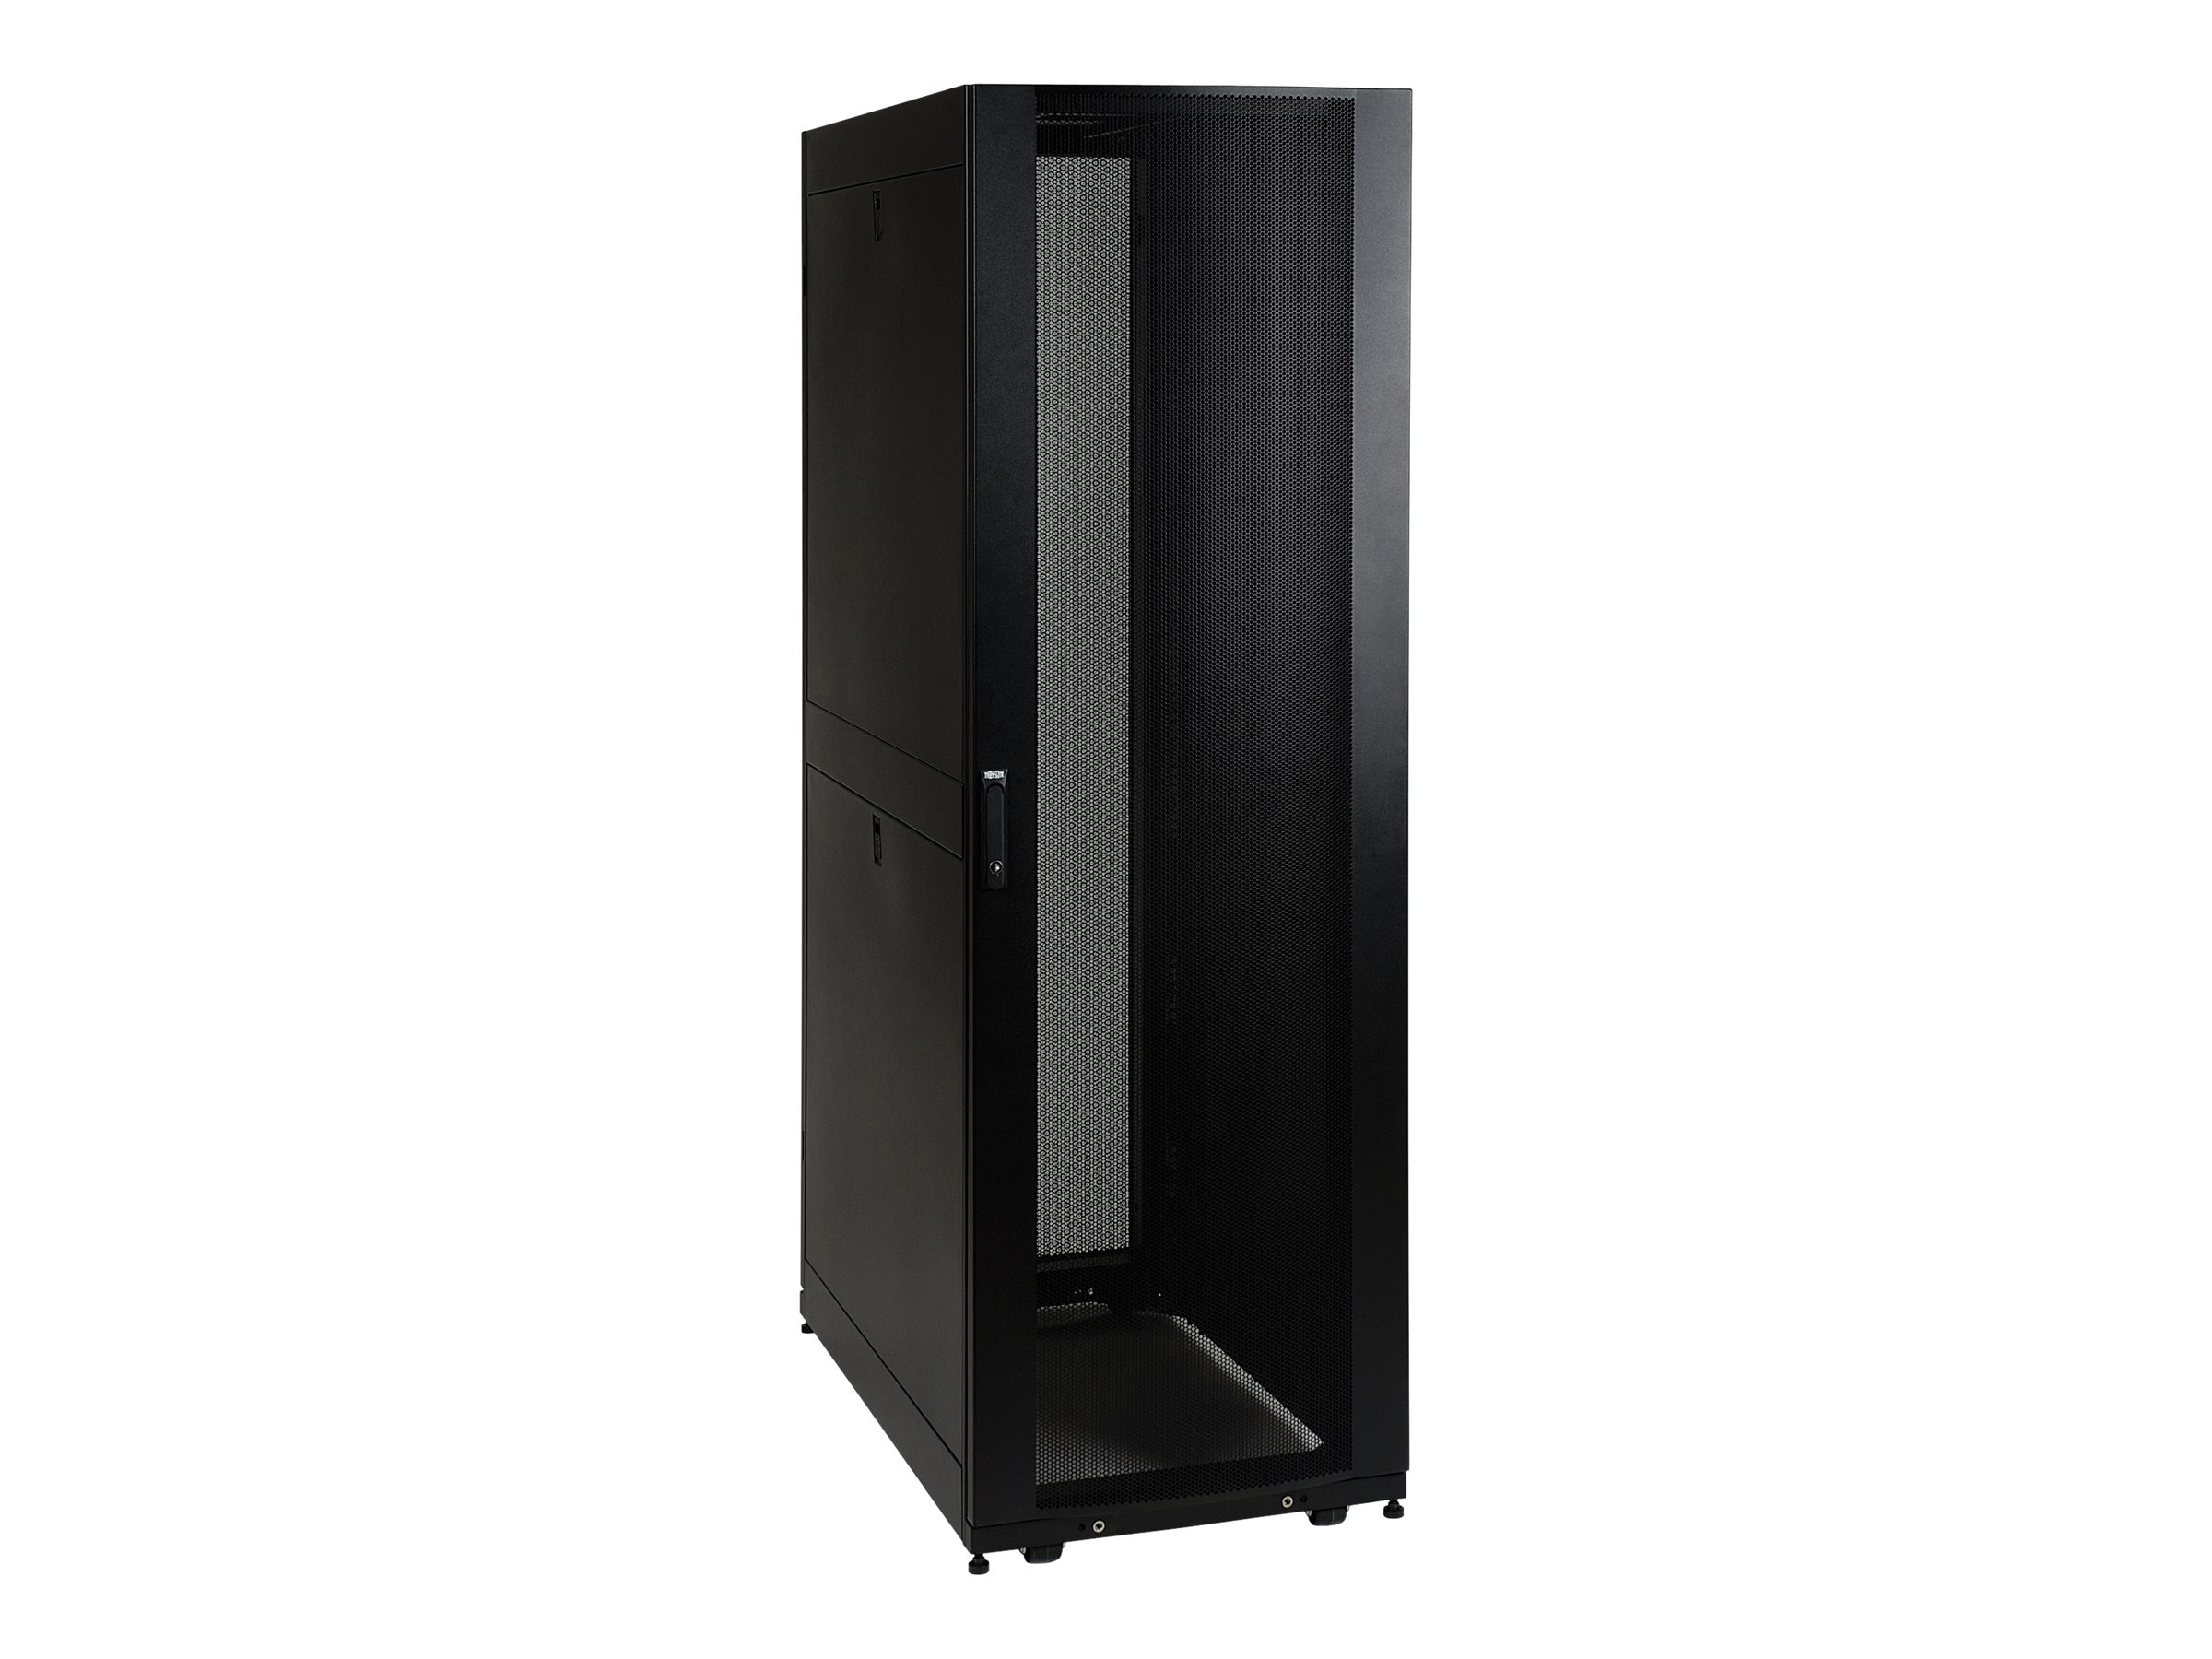 Tripp Lite 42U Rack Enclosure Server Cabinet, Instant Rebate - Save $75, SR42UB, 6156760, Racks & Cabinets